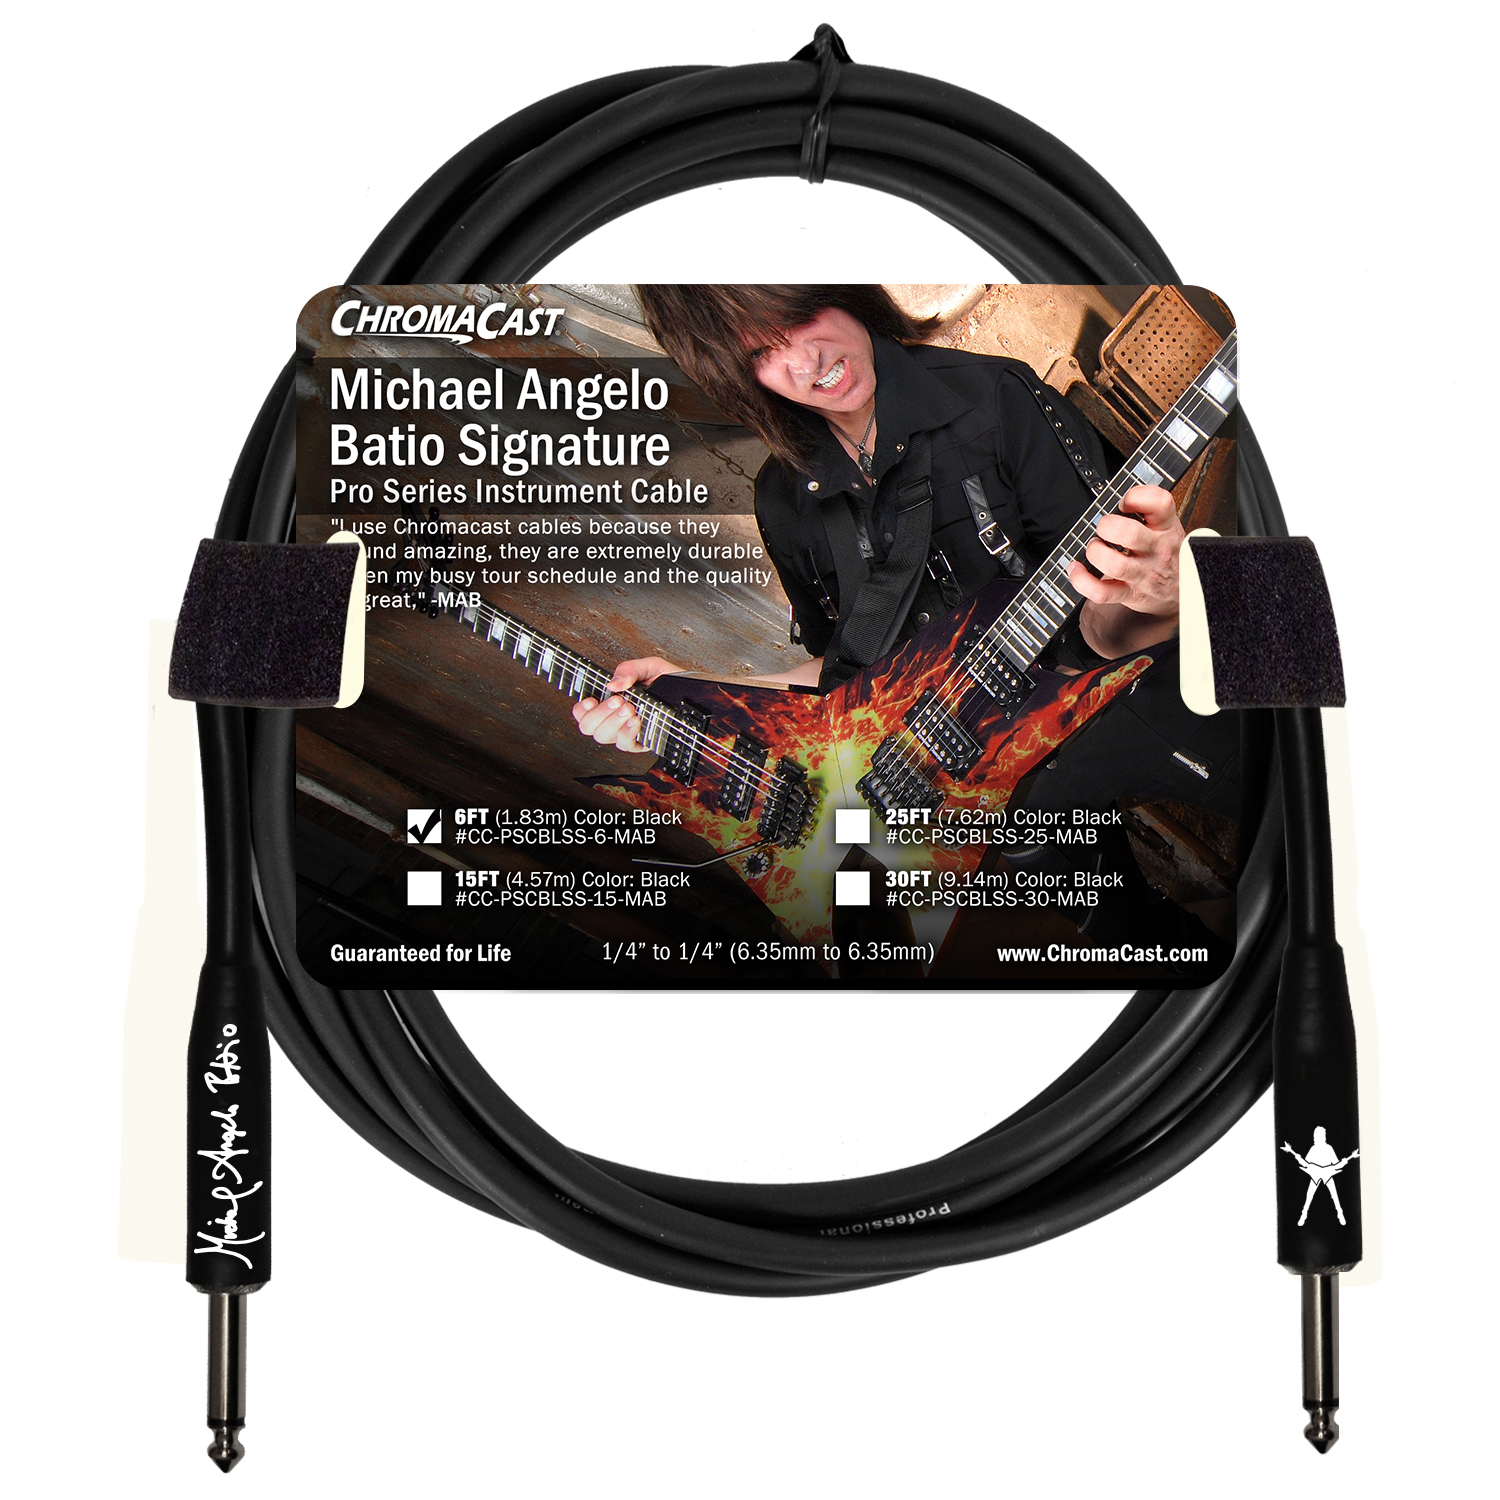 MAB Signature 6' Pro Series Cable